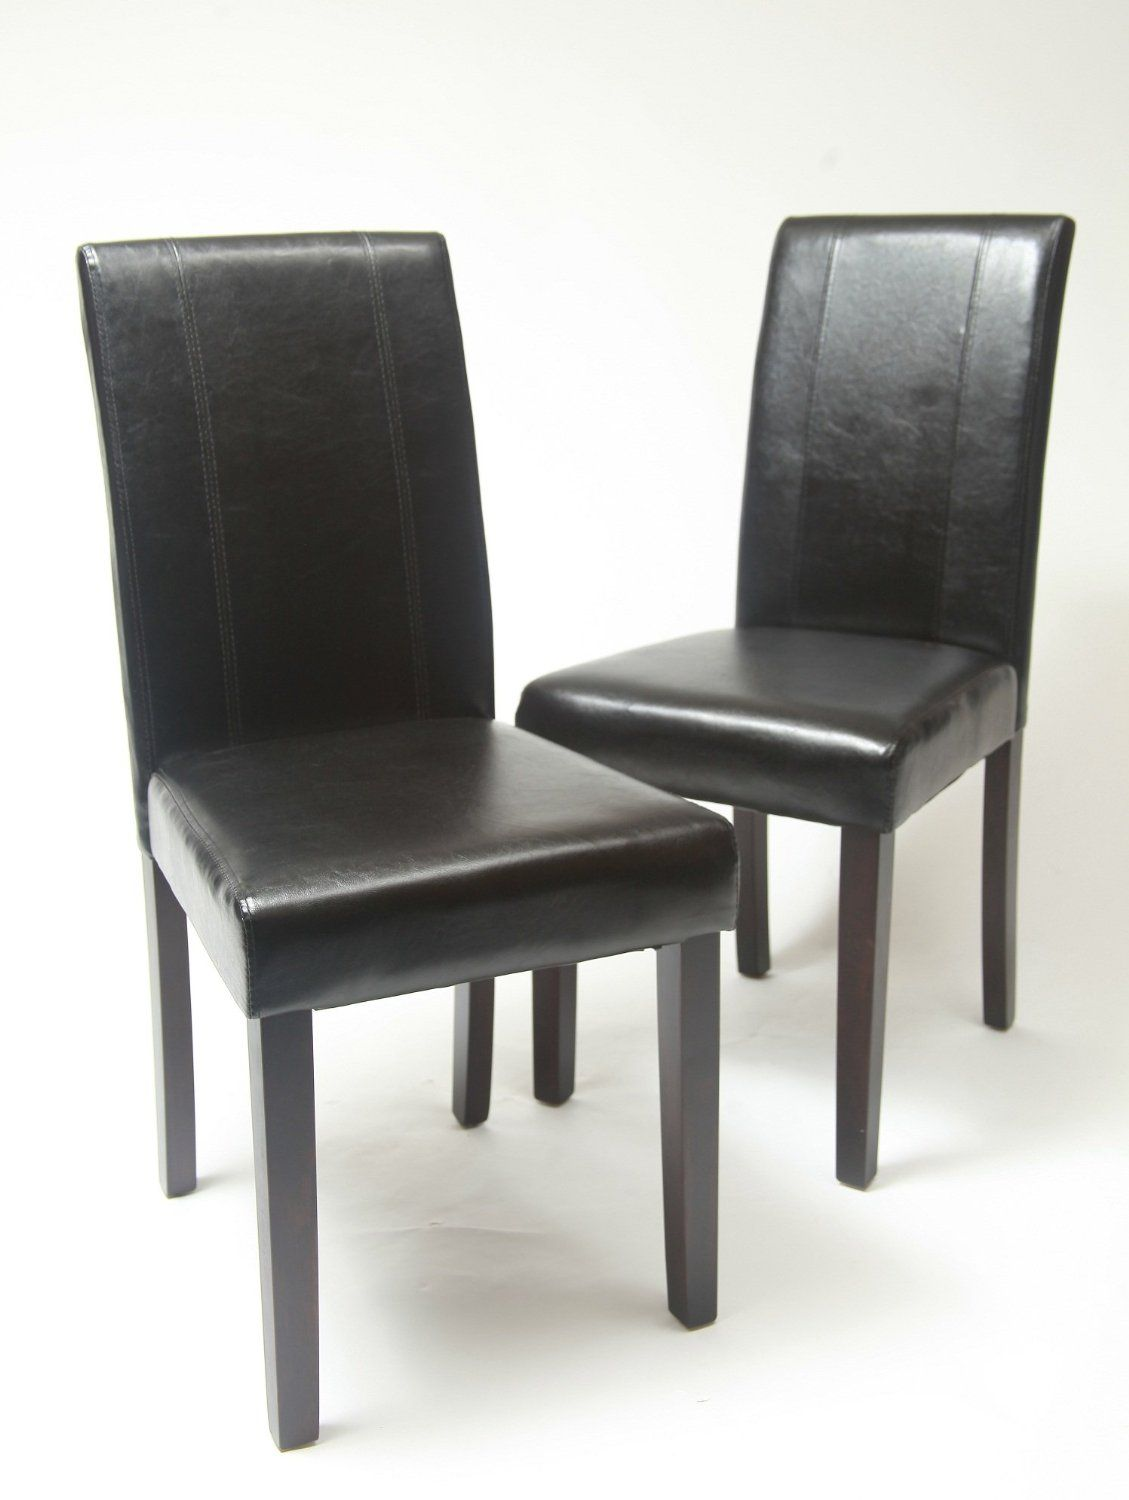 5 Big Kitchen Chairs For Heavy People Black Leather Dining